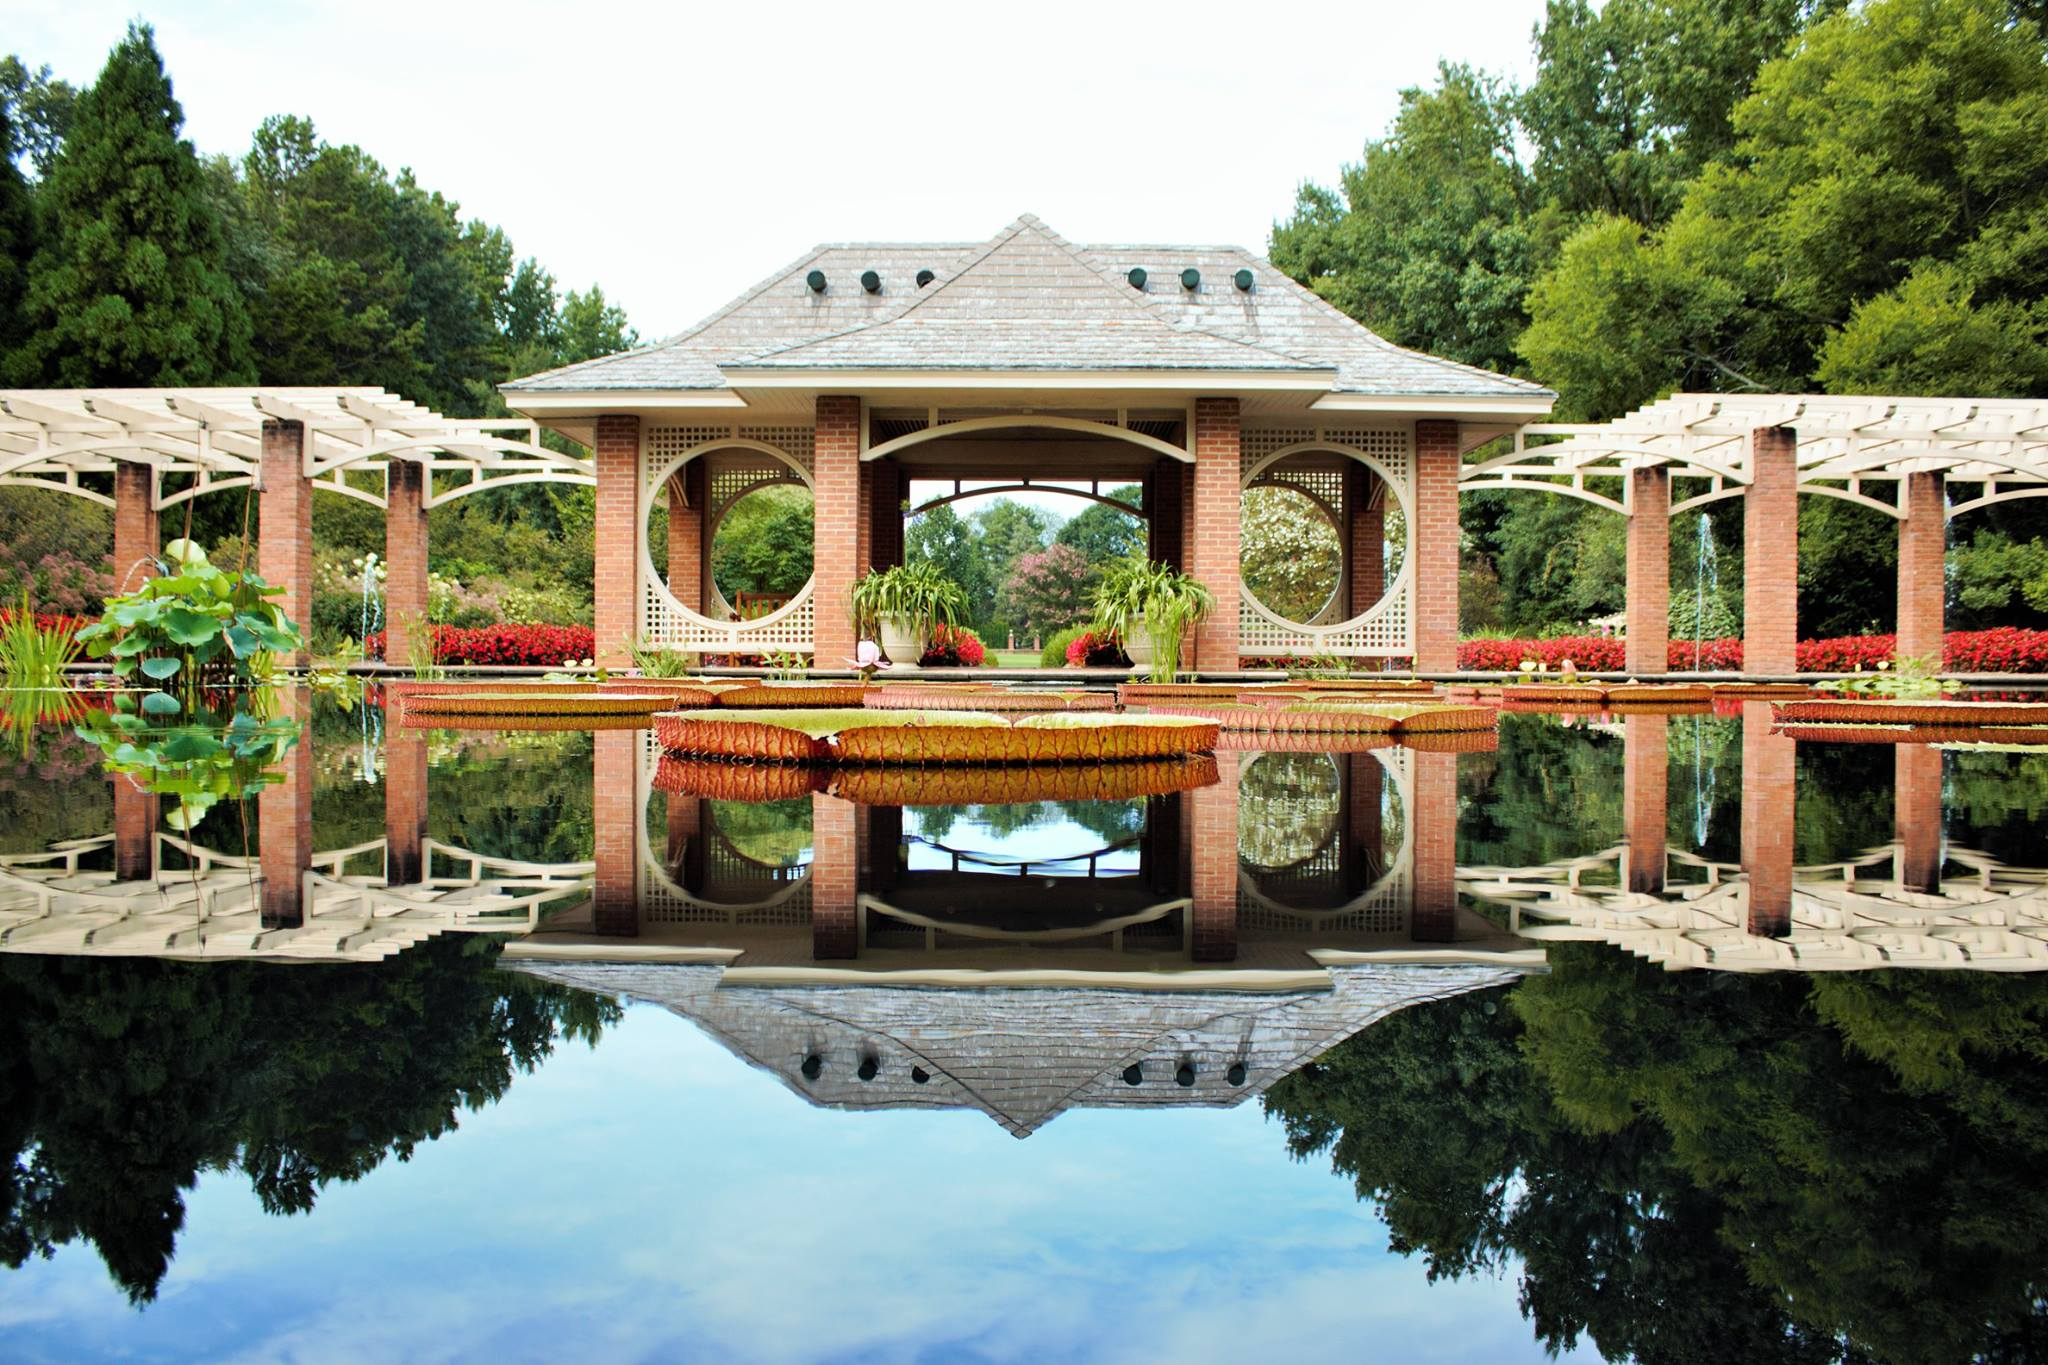 huntsville botanical garden is a beautiful natural oasis in alabama